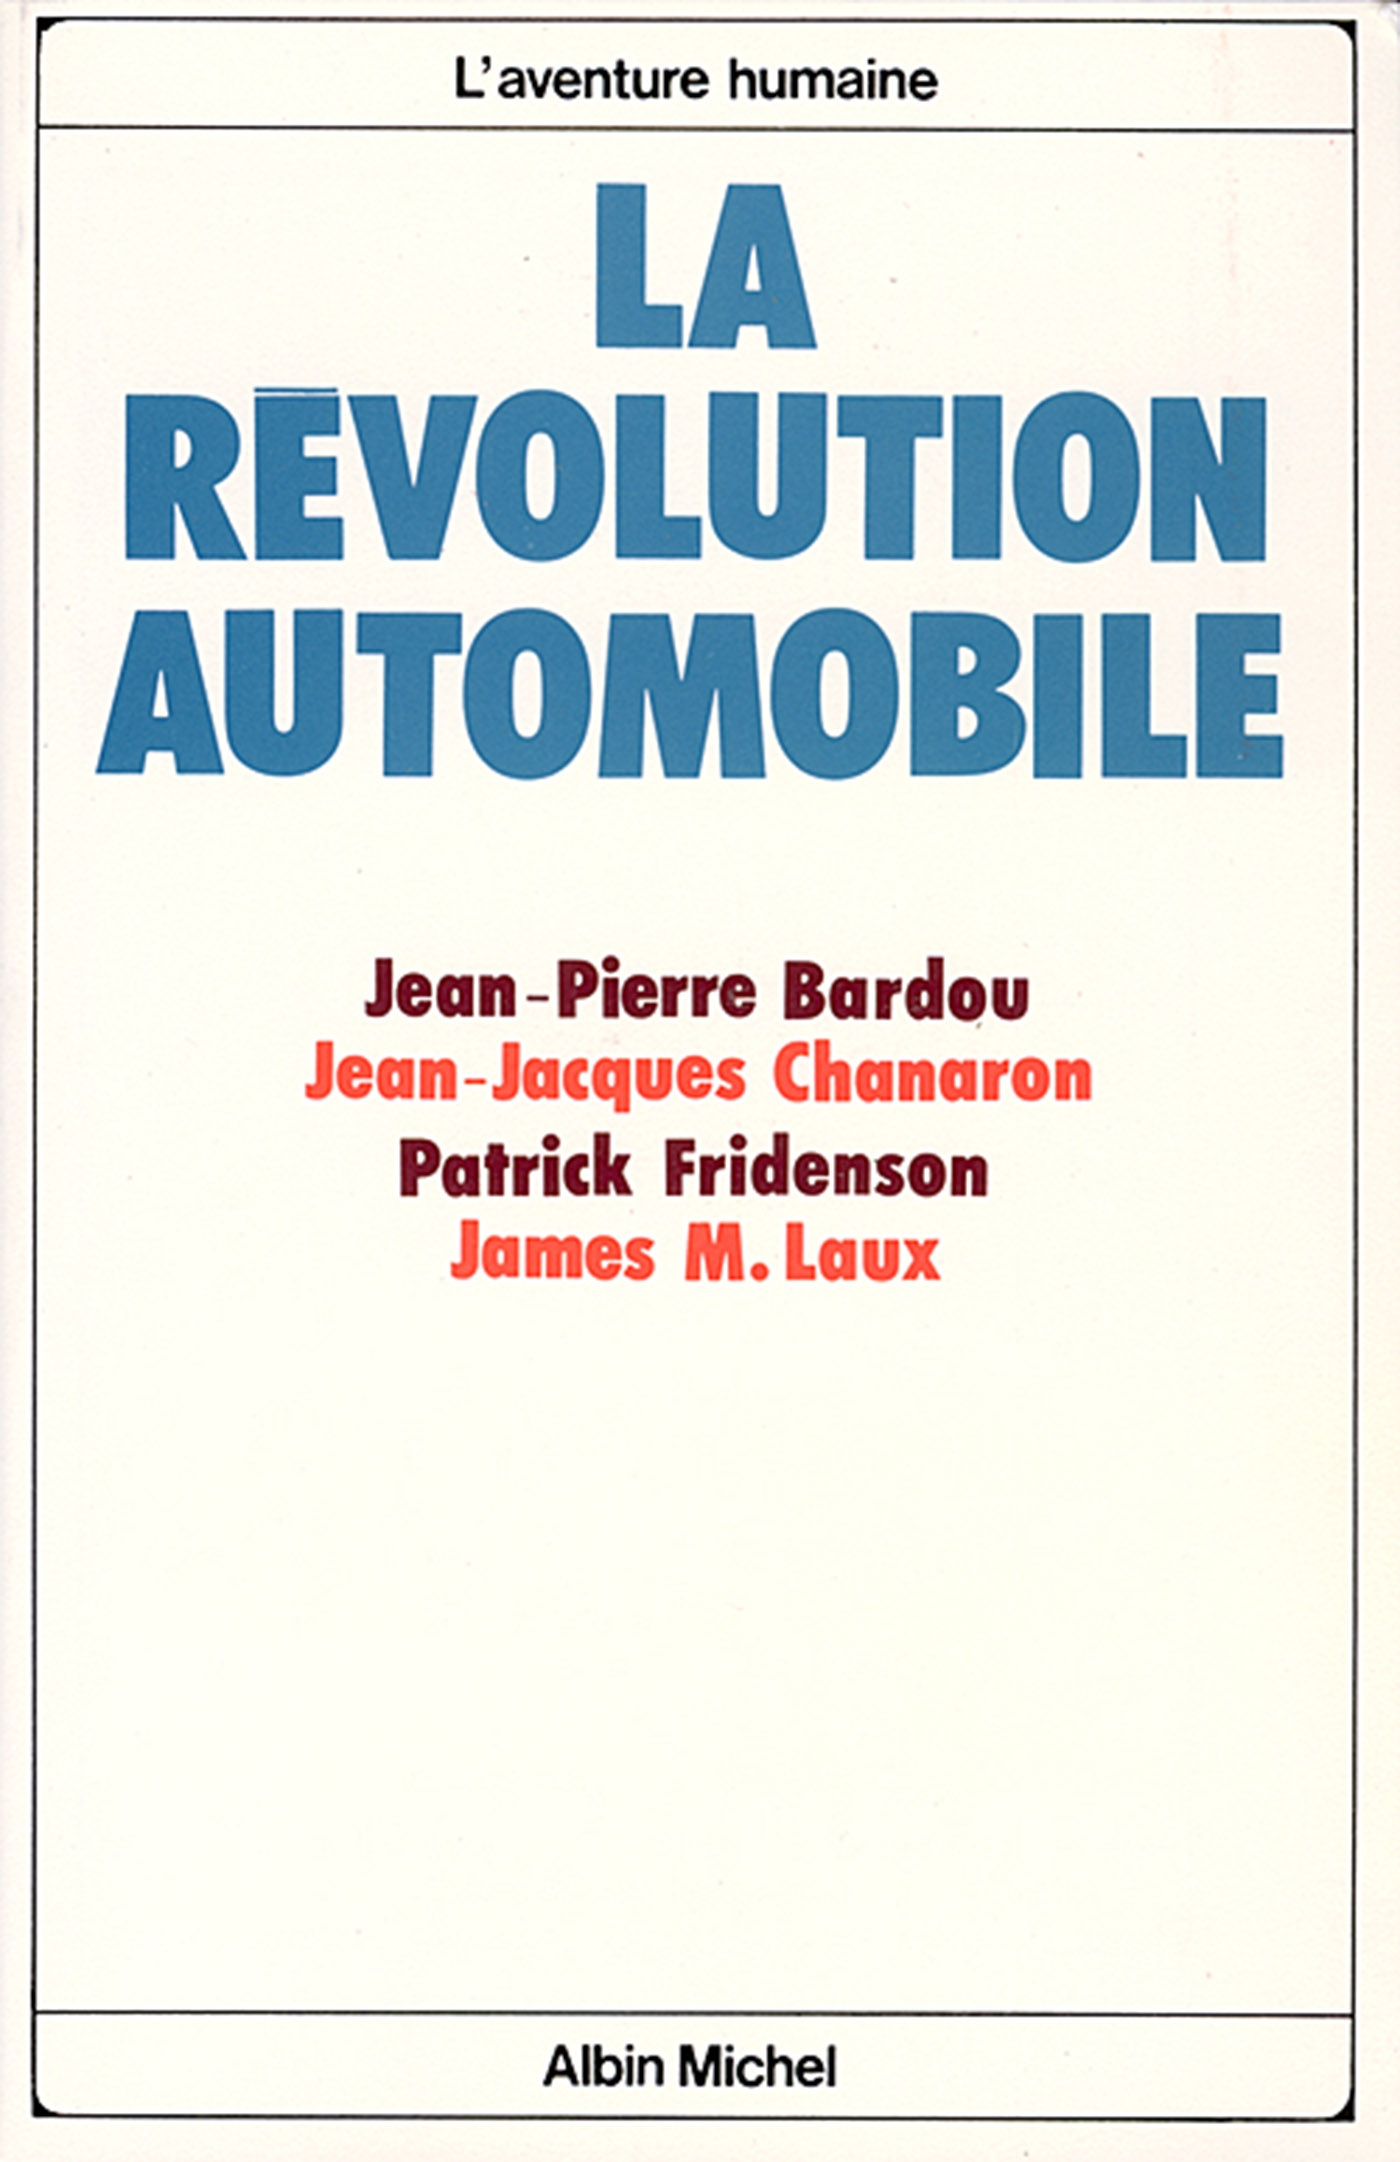 La Révolution automobile